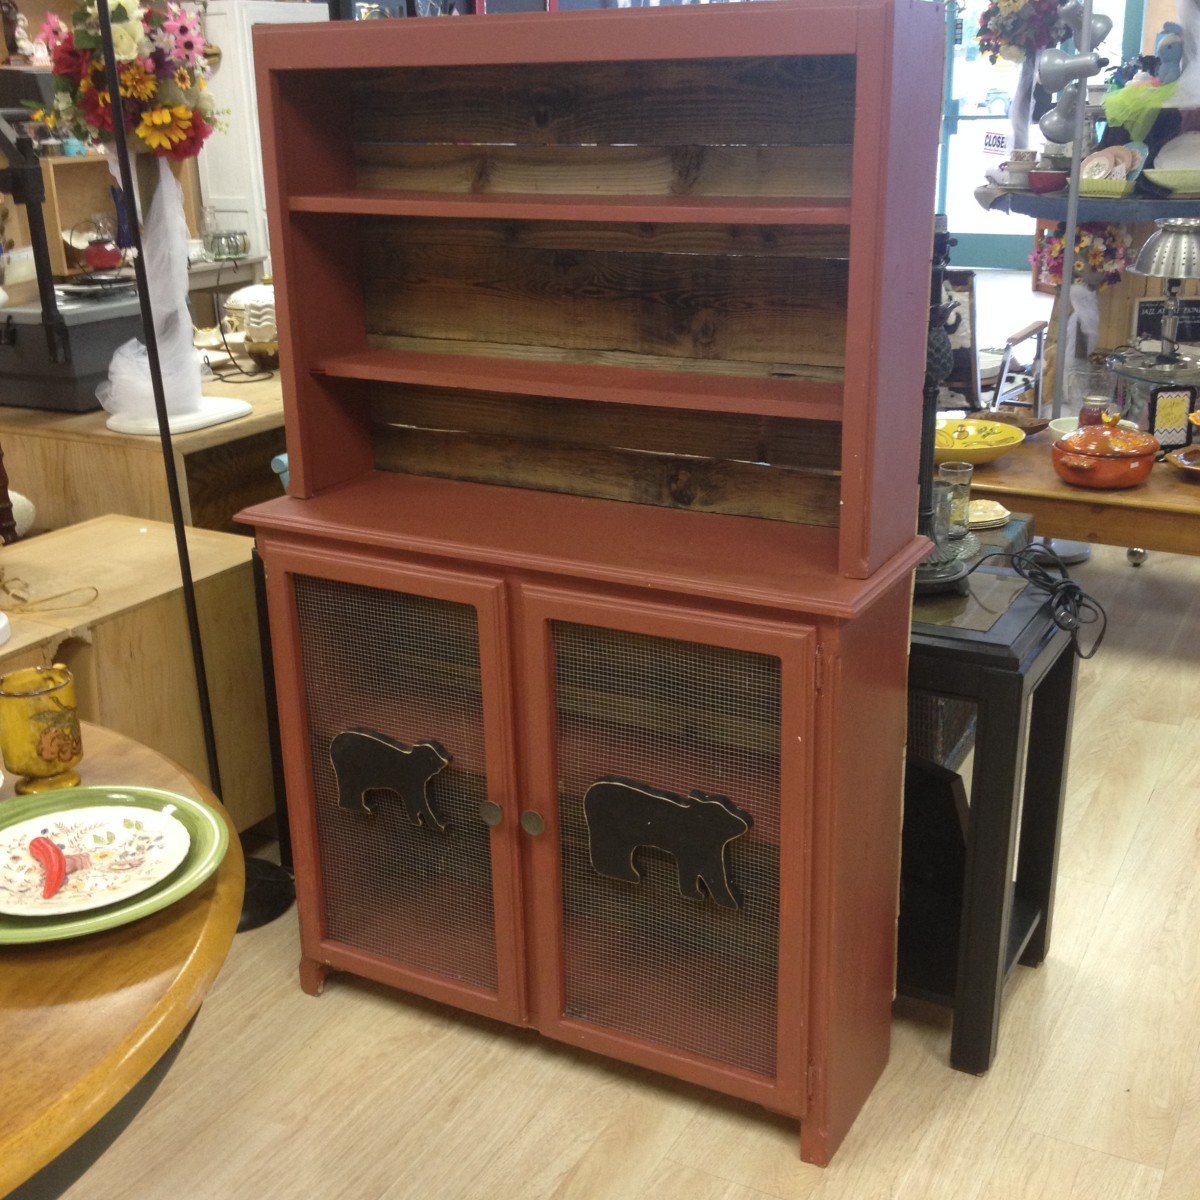 This is a hutch that was re purposed from an entertainment center at ReJunkery.